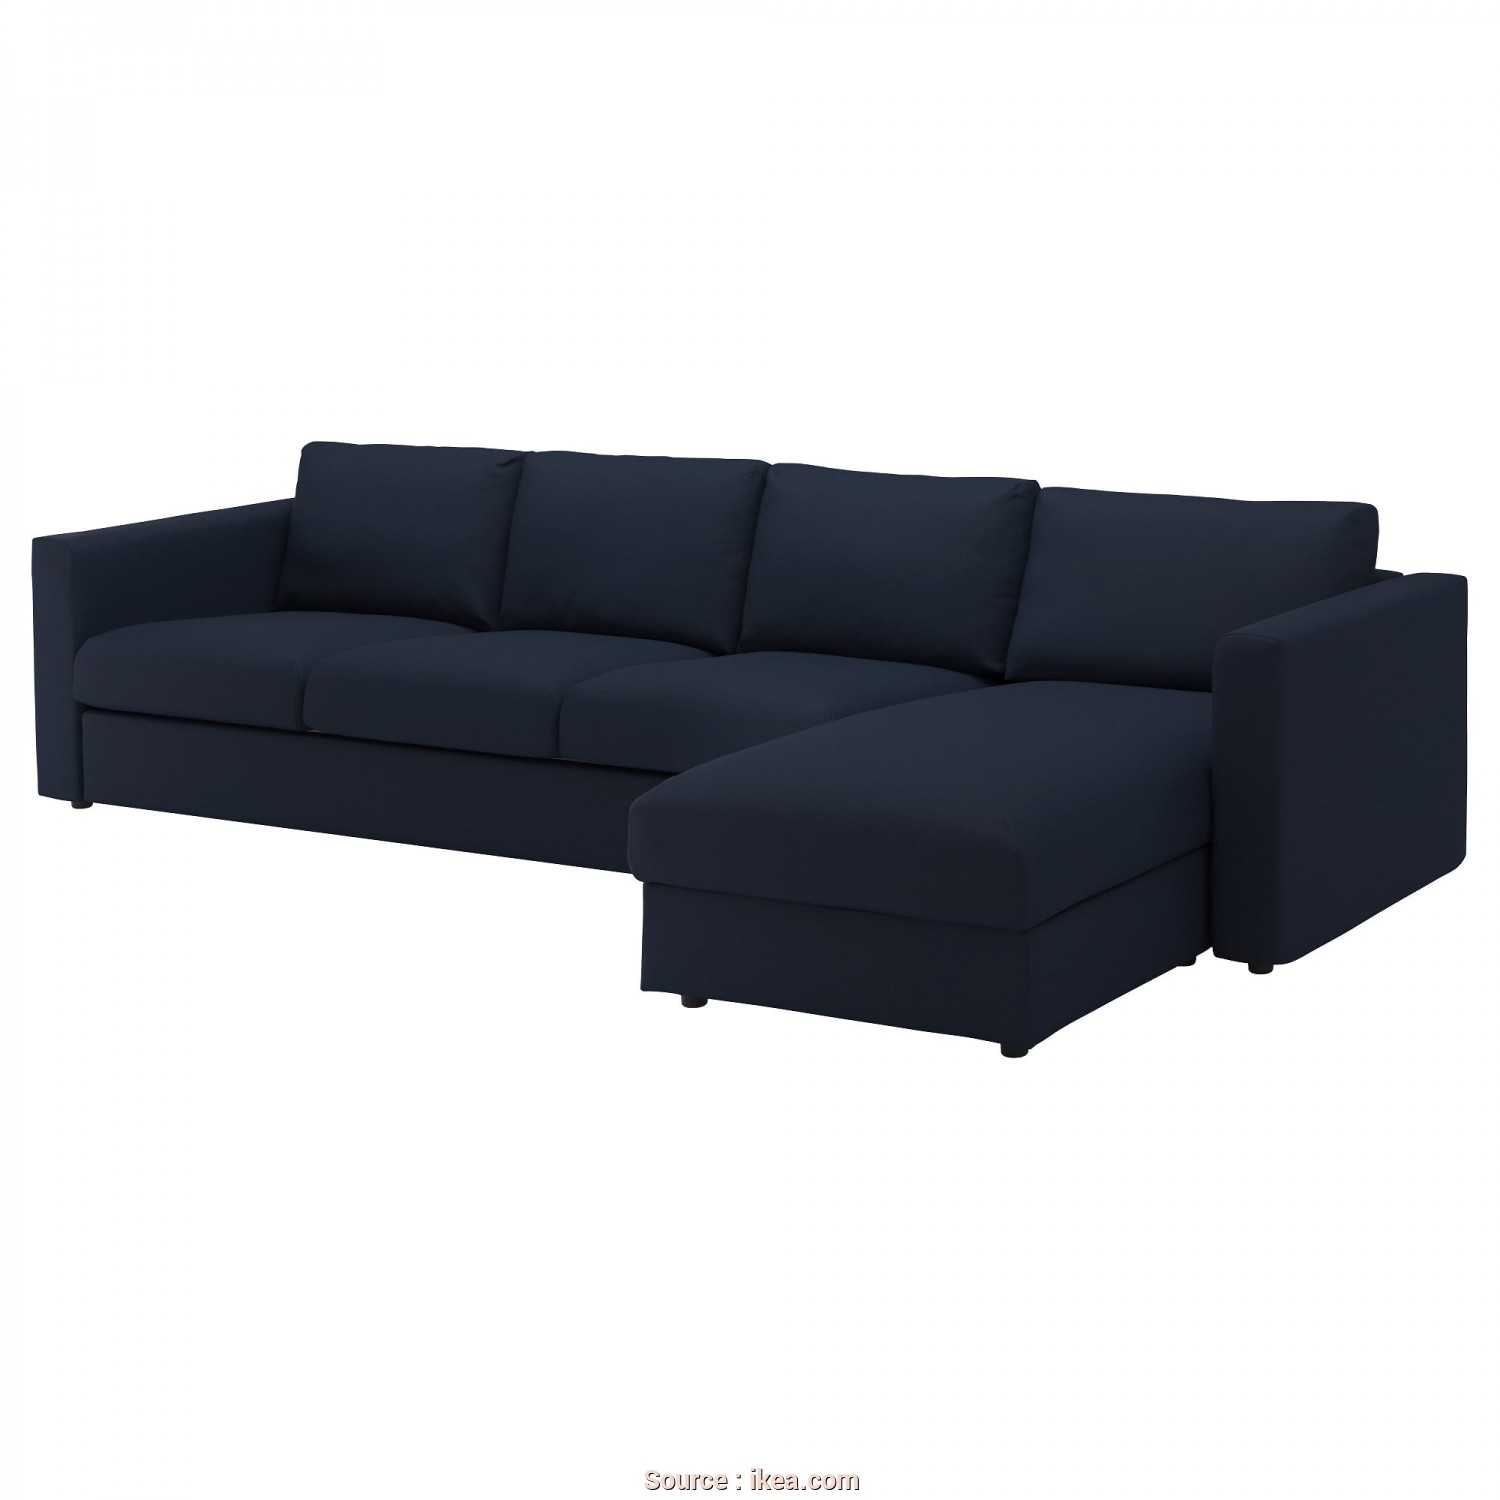 Ikea 4 Seater Sofa Bellissimo 4 Ikea Klippan 4 Seater Sofa Uk - Jake Vintage